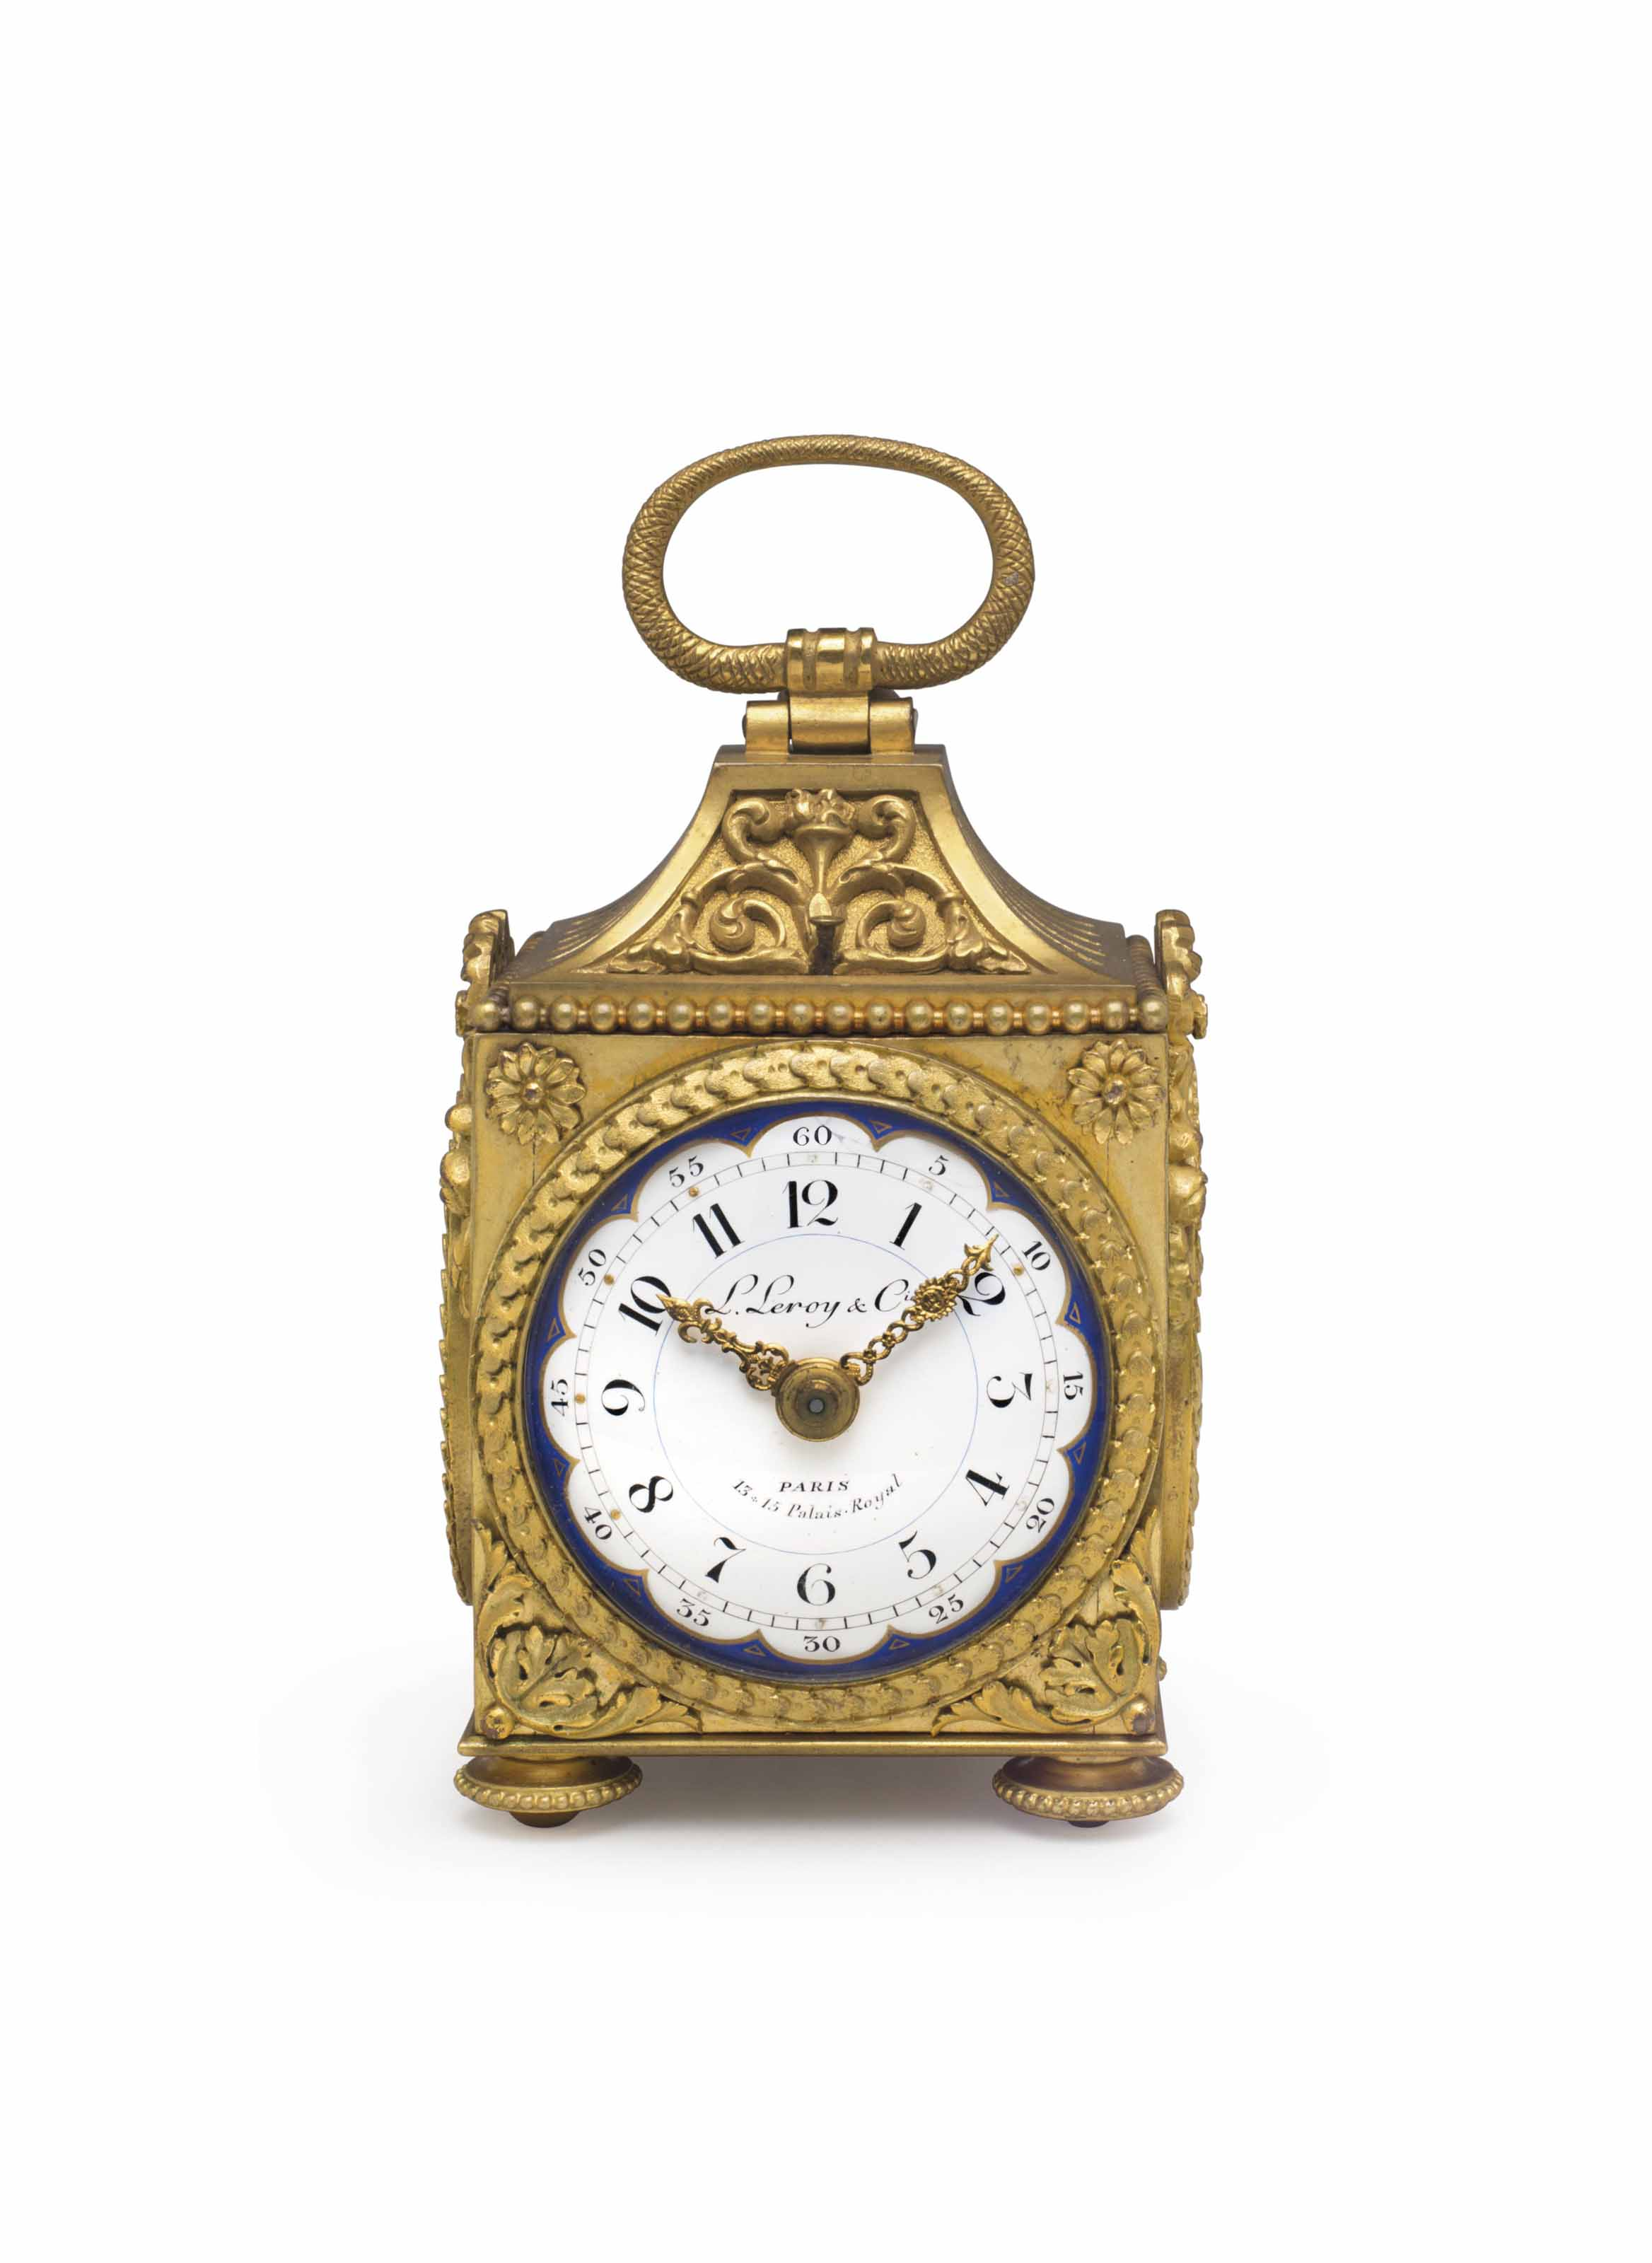 LeRoy.  A Fine and Rare Gilt-Brass and Enamel Striking and Repeating Eight Day Miniature Pendule d' Officier Carriage Clock